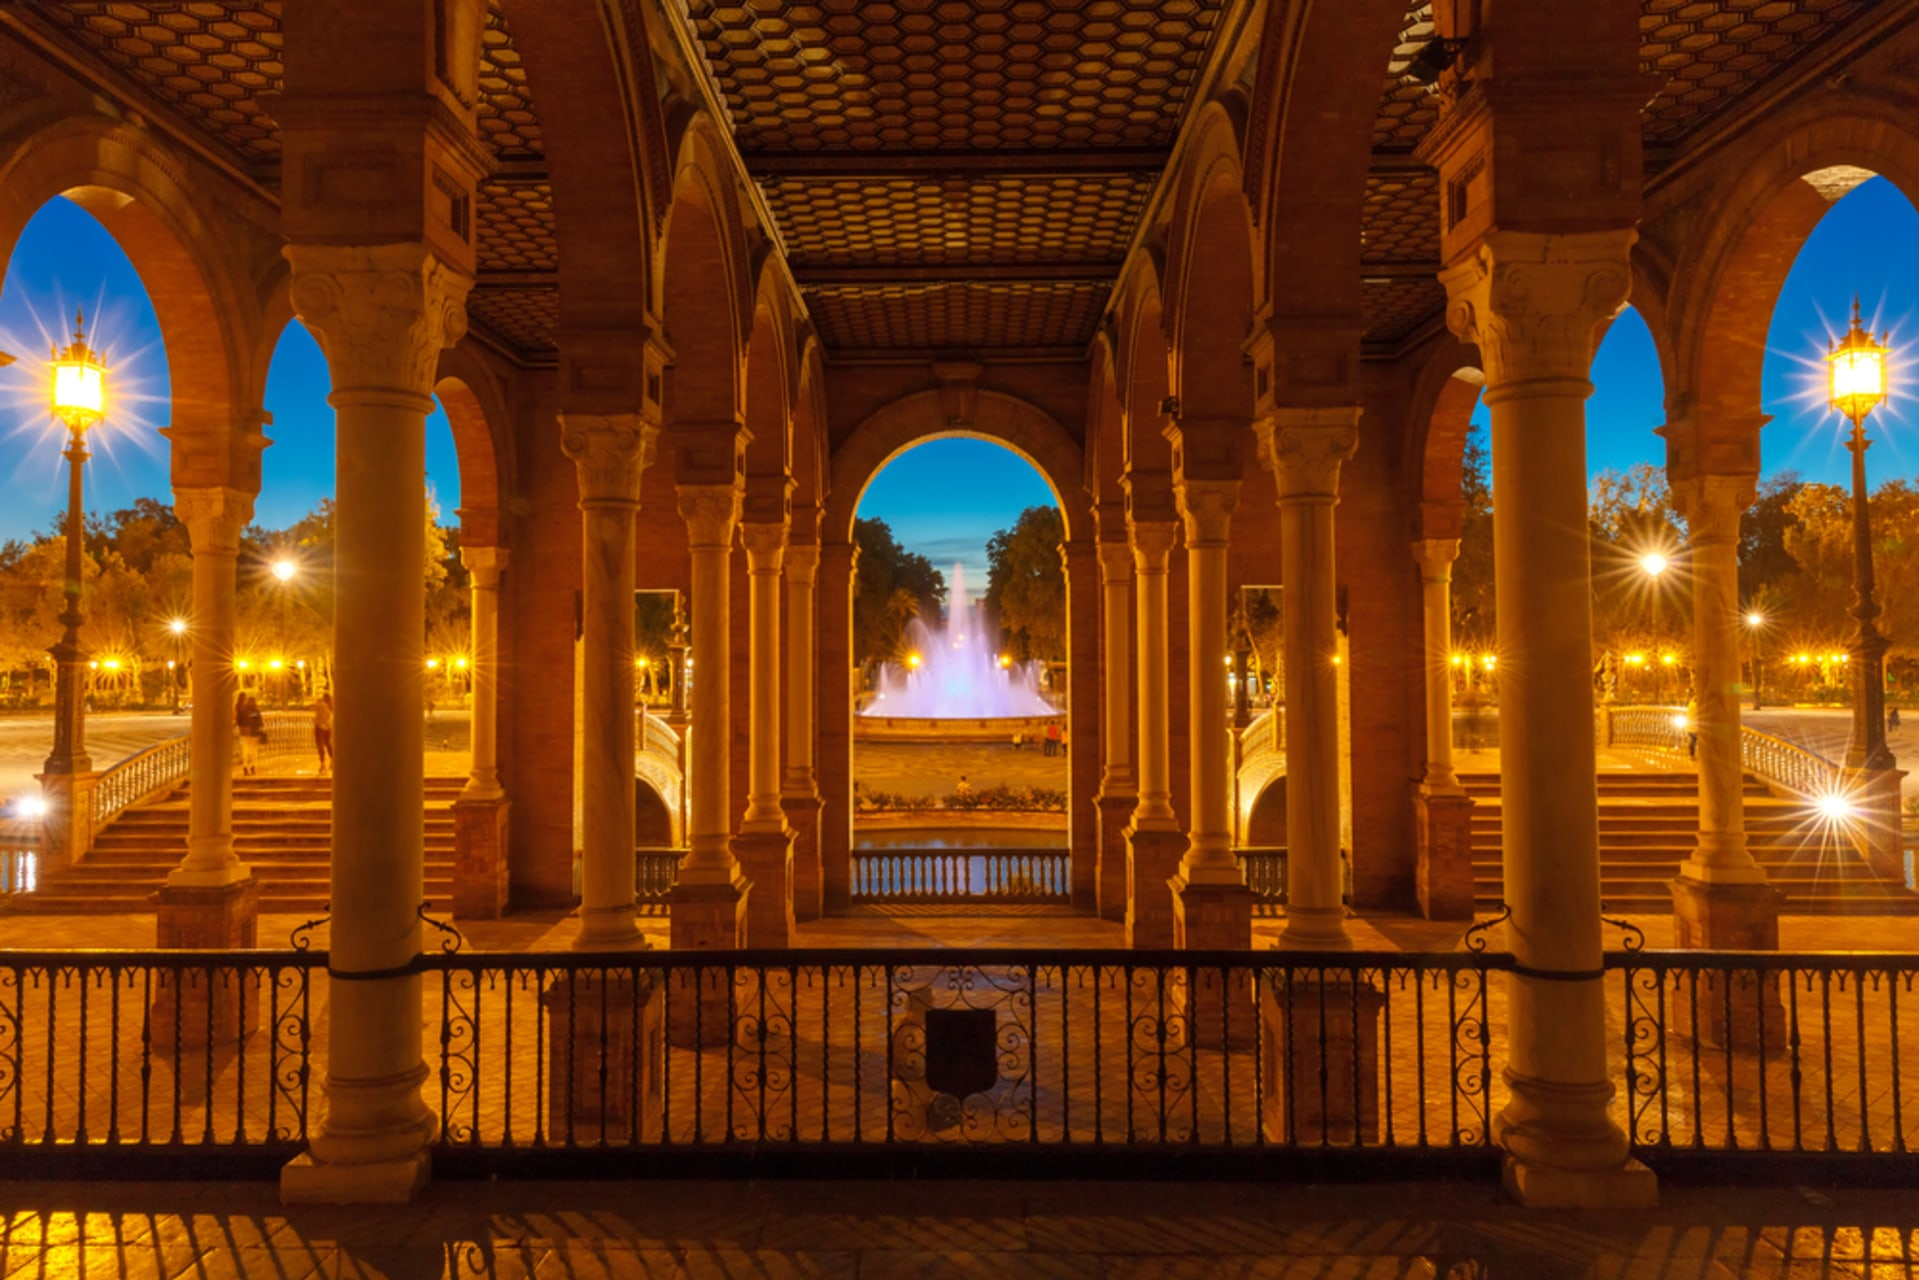 Seville - Sevilla at night, the tour you must see! Part 2